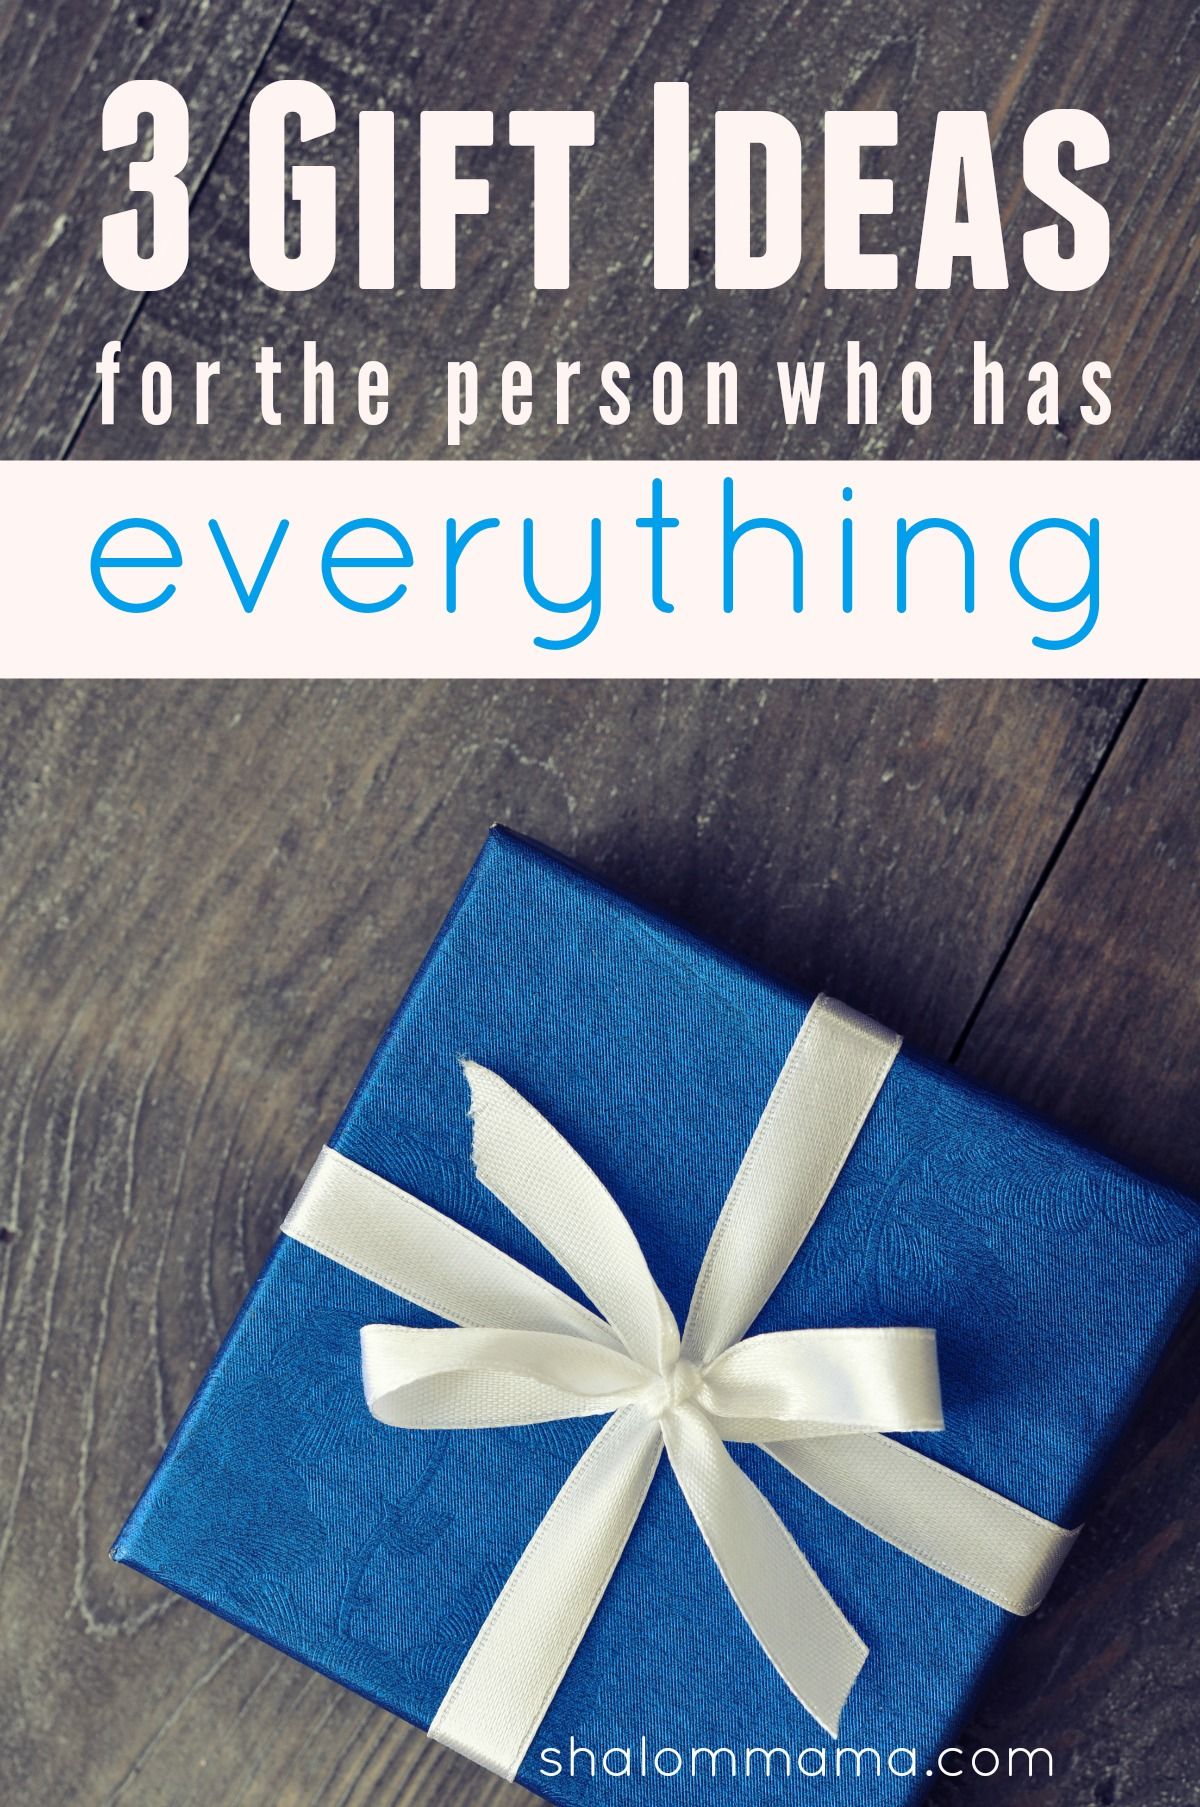 3 gift ideas for the person who has everythingjpg